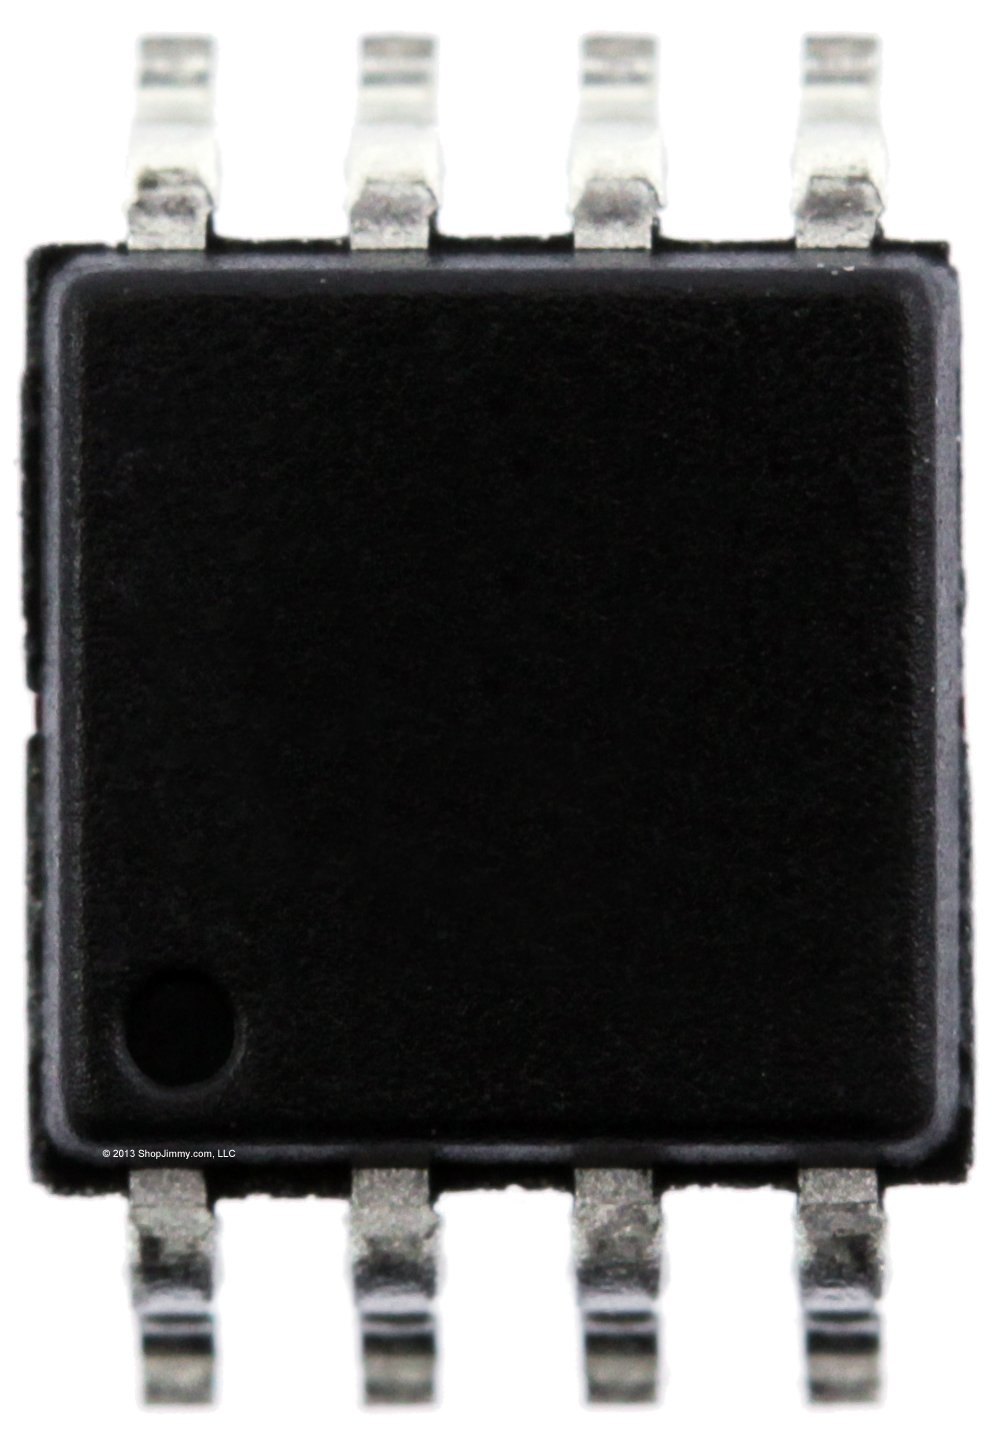 VIZIO E321VL 3632-1512-0150 Main Board U18 EEPROM ONLY (see details below before purchase) by VIZIO